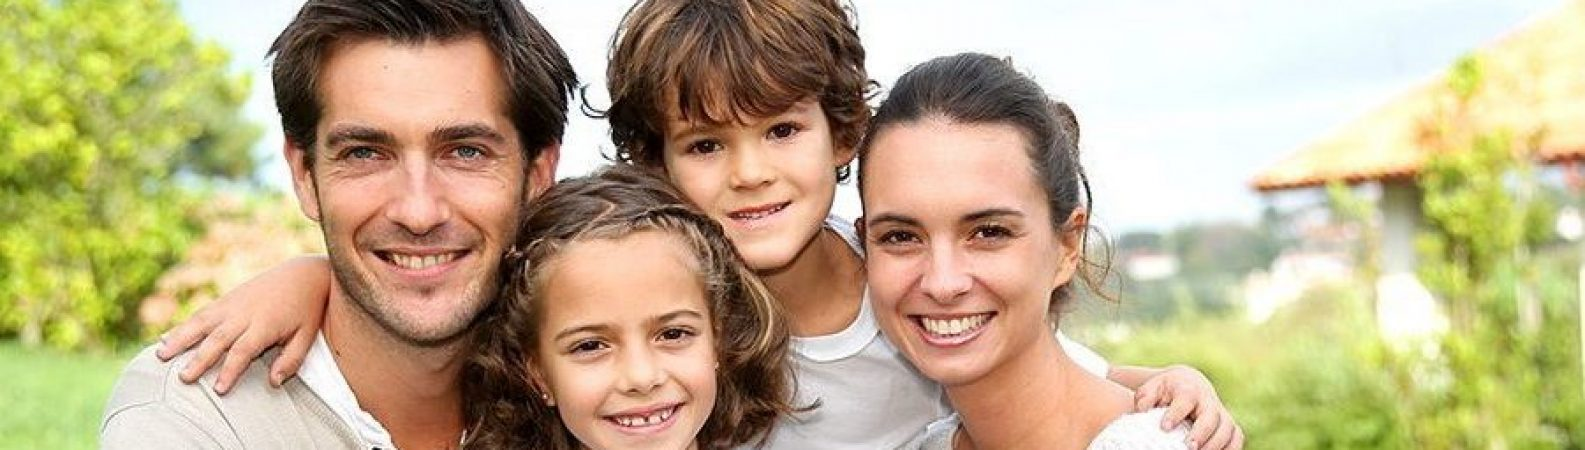 Help Your Whole Family At Our Tulsa, OK Family Dental Office